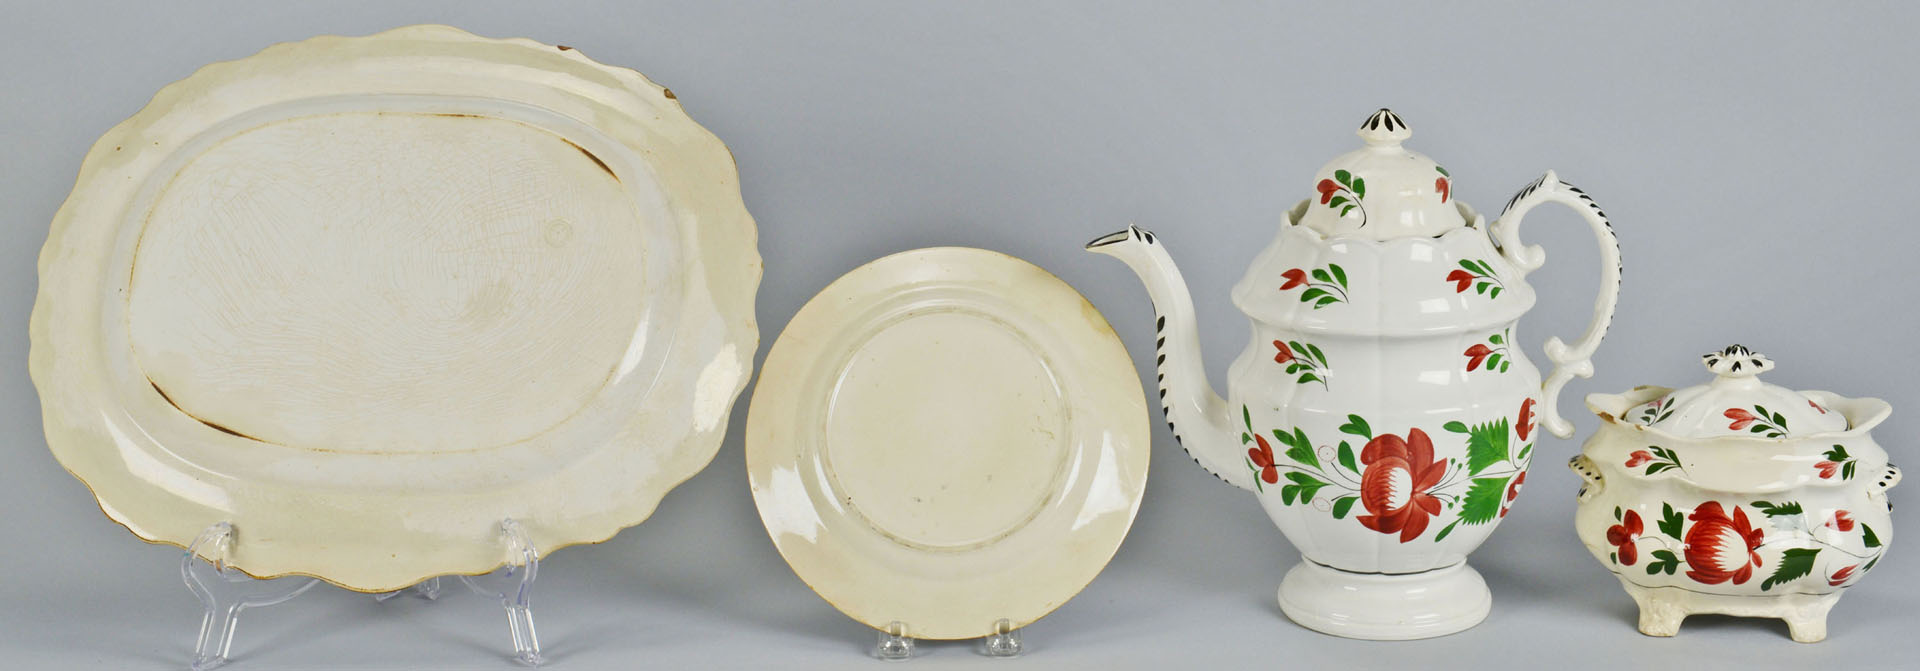 11 pcs of Adams Rose Ironstone Pottery, Other